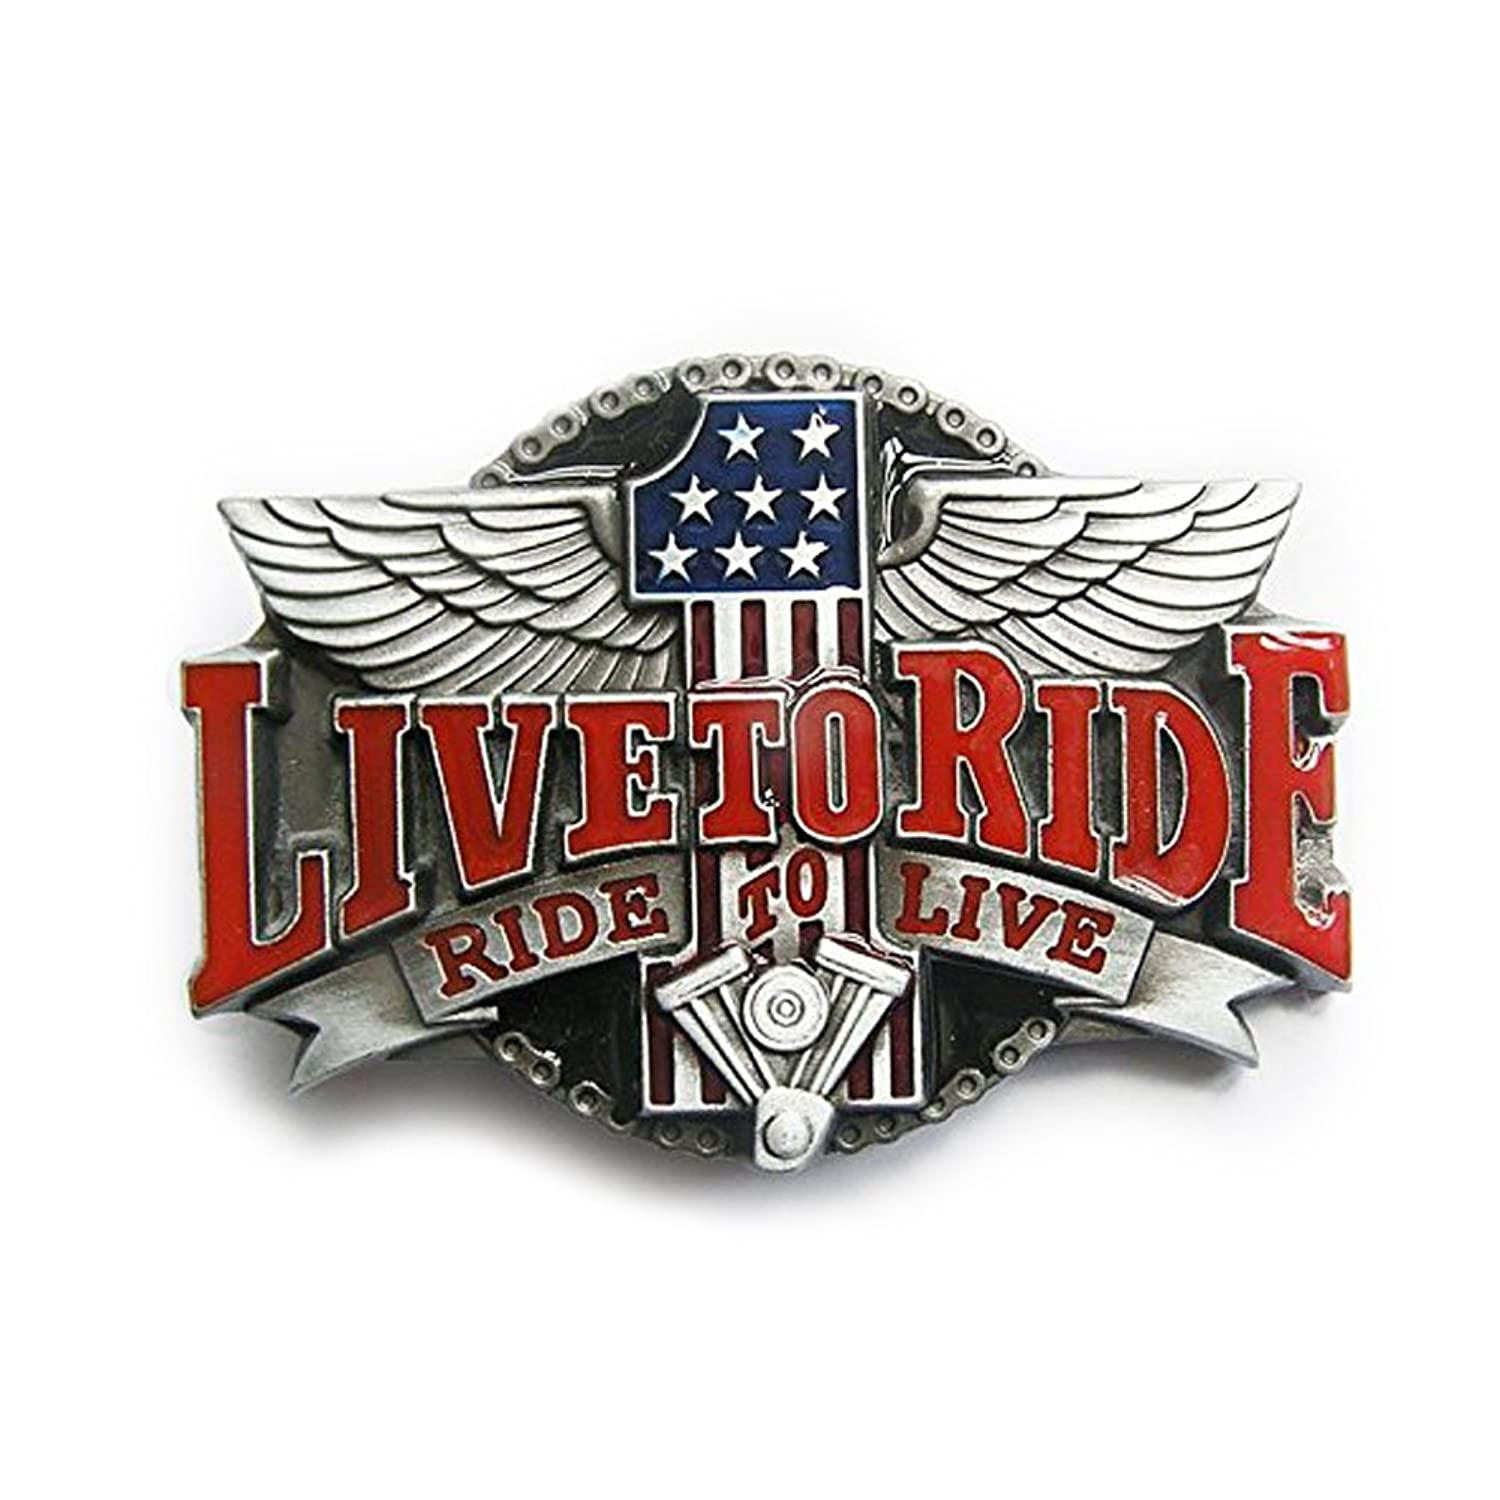 eeddoo® Gürtelschnalle - #1 Live to Ride - Ride to Live (Buckle für Wechselgürtel für Damen und Herren | Belt Frauen Männer Oldschool Rockabilly Metall Gothic Wave Rock Biker Western Trucker)